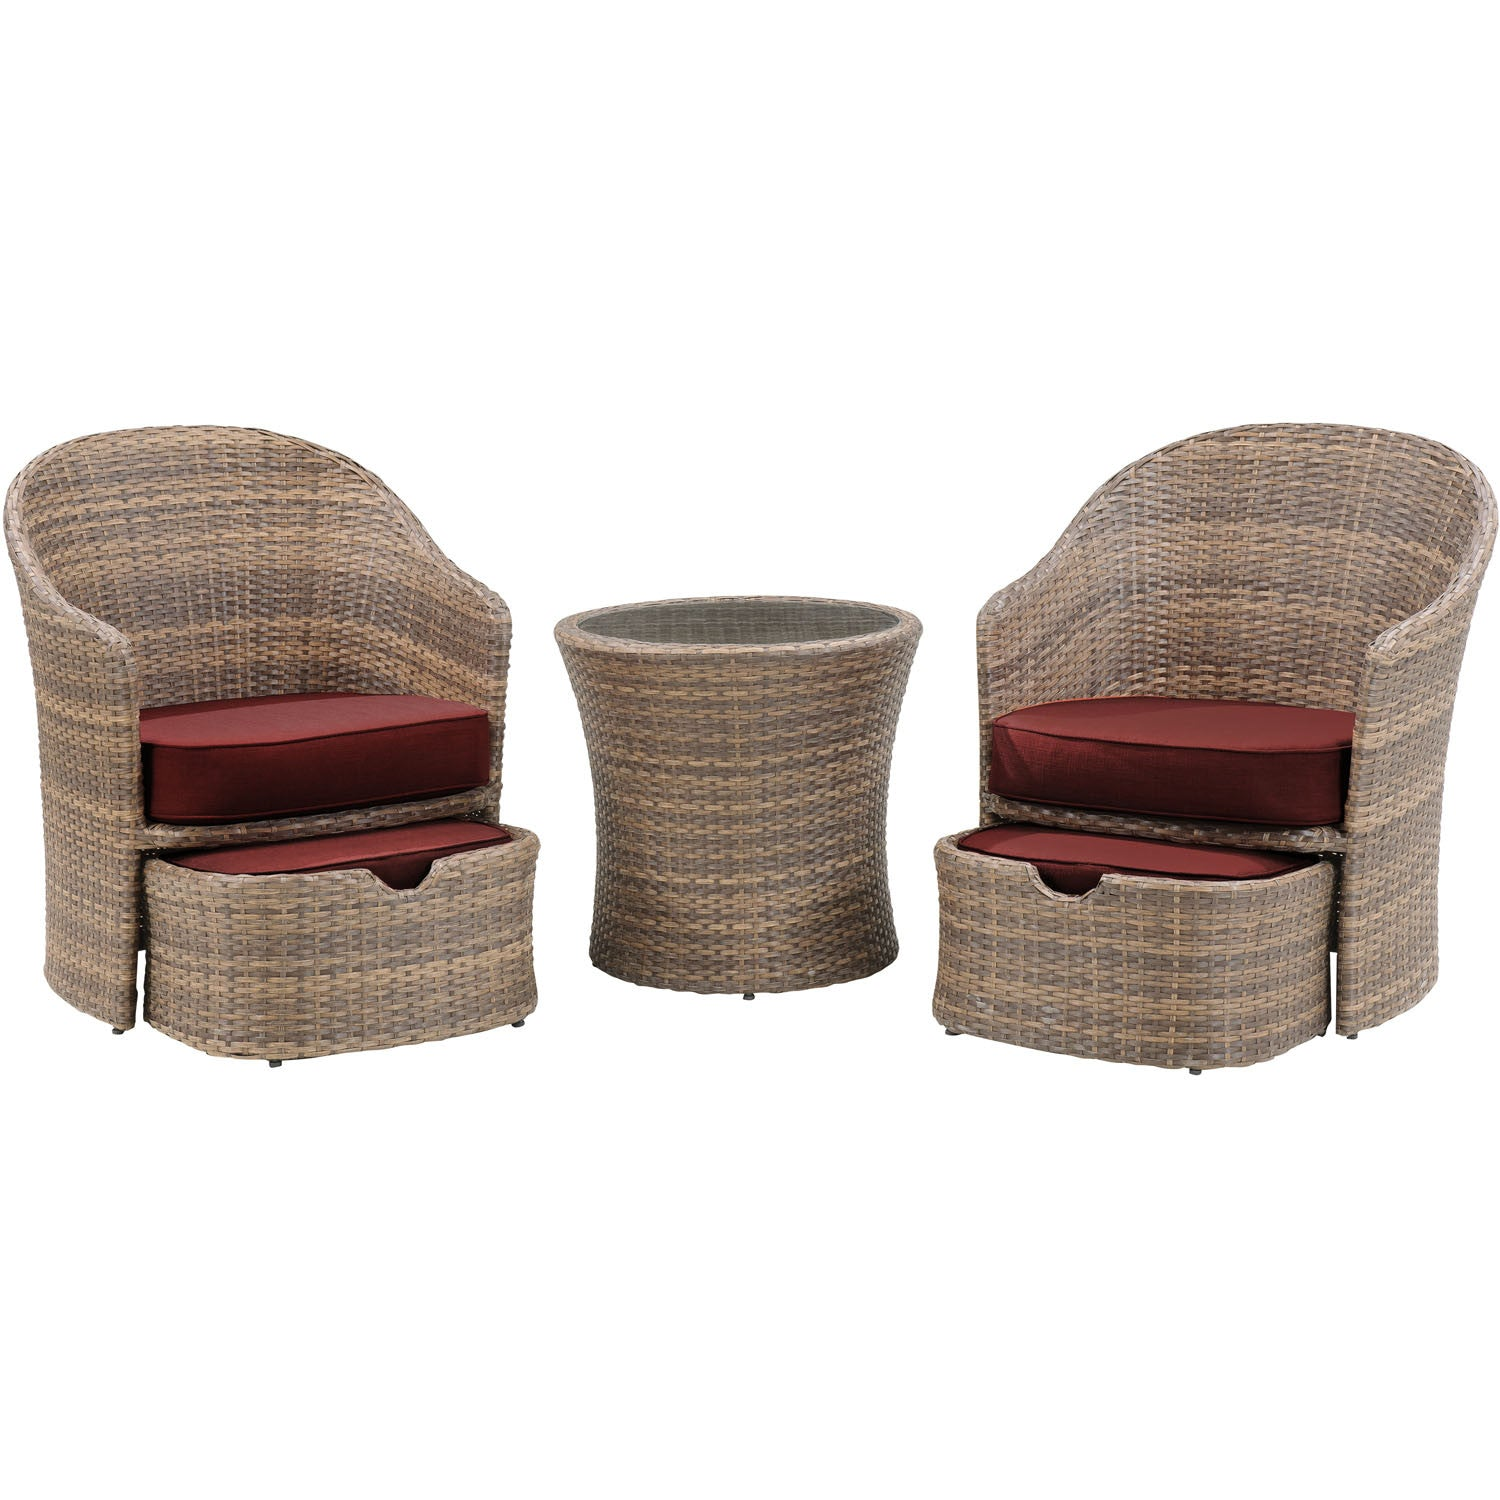 Seneca 5pc seating set 2 woven chairs 2 ottomans 1 woven side table bbqdeal com